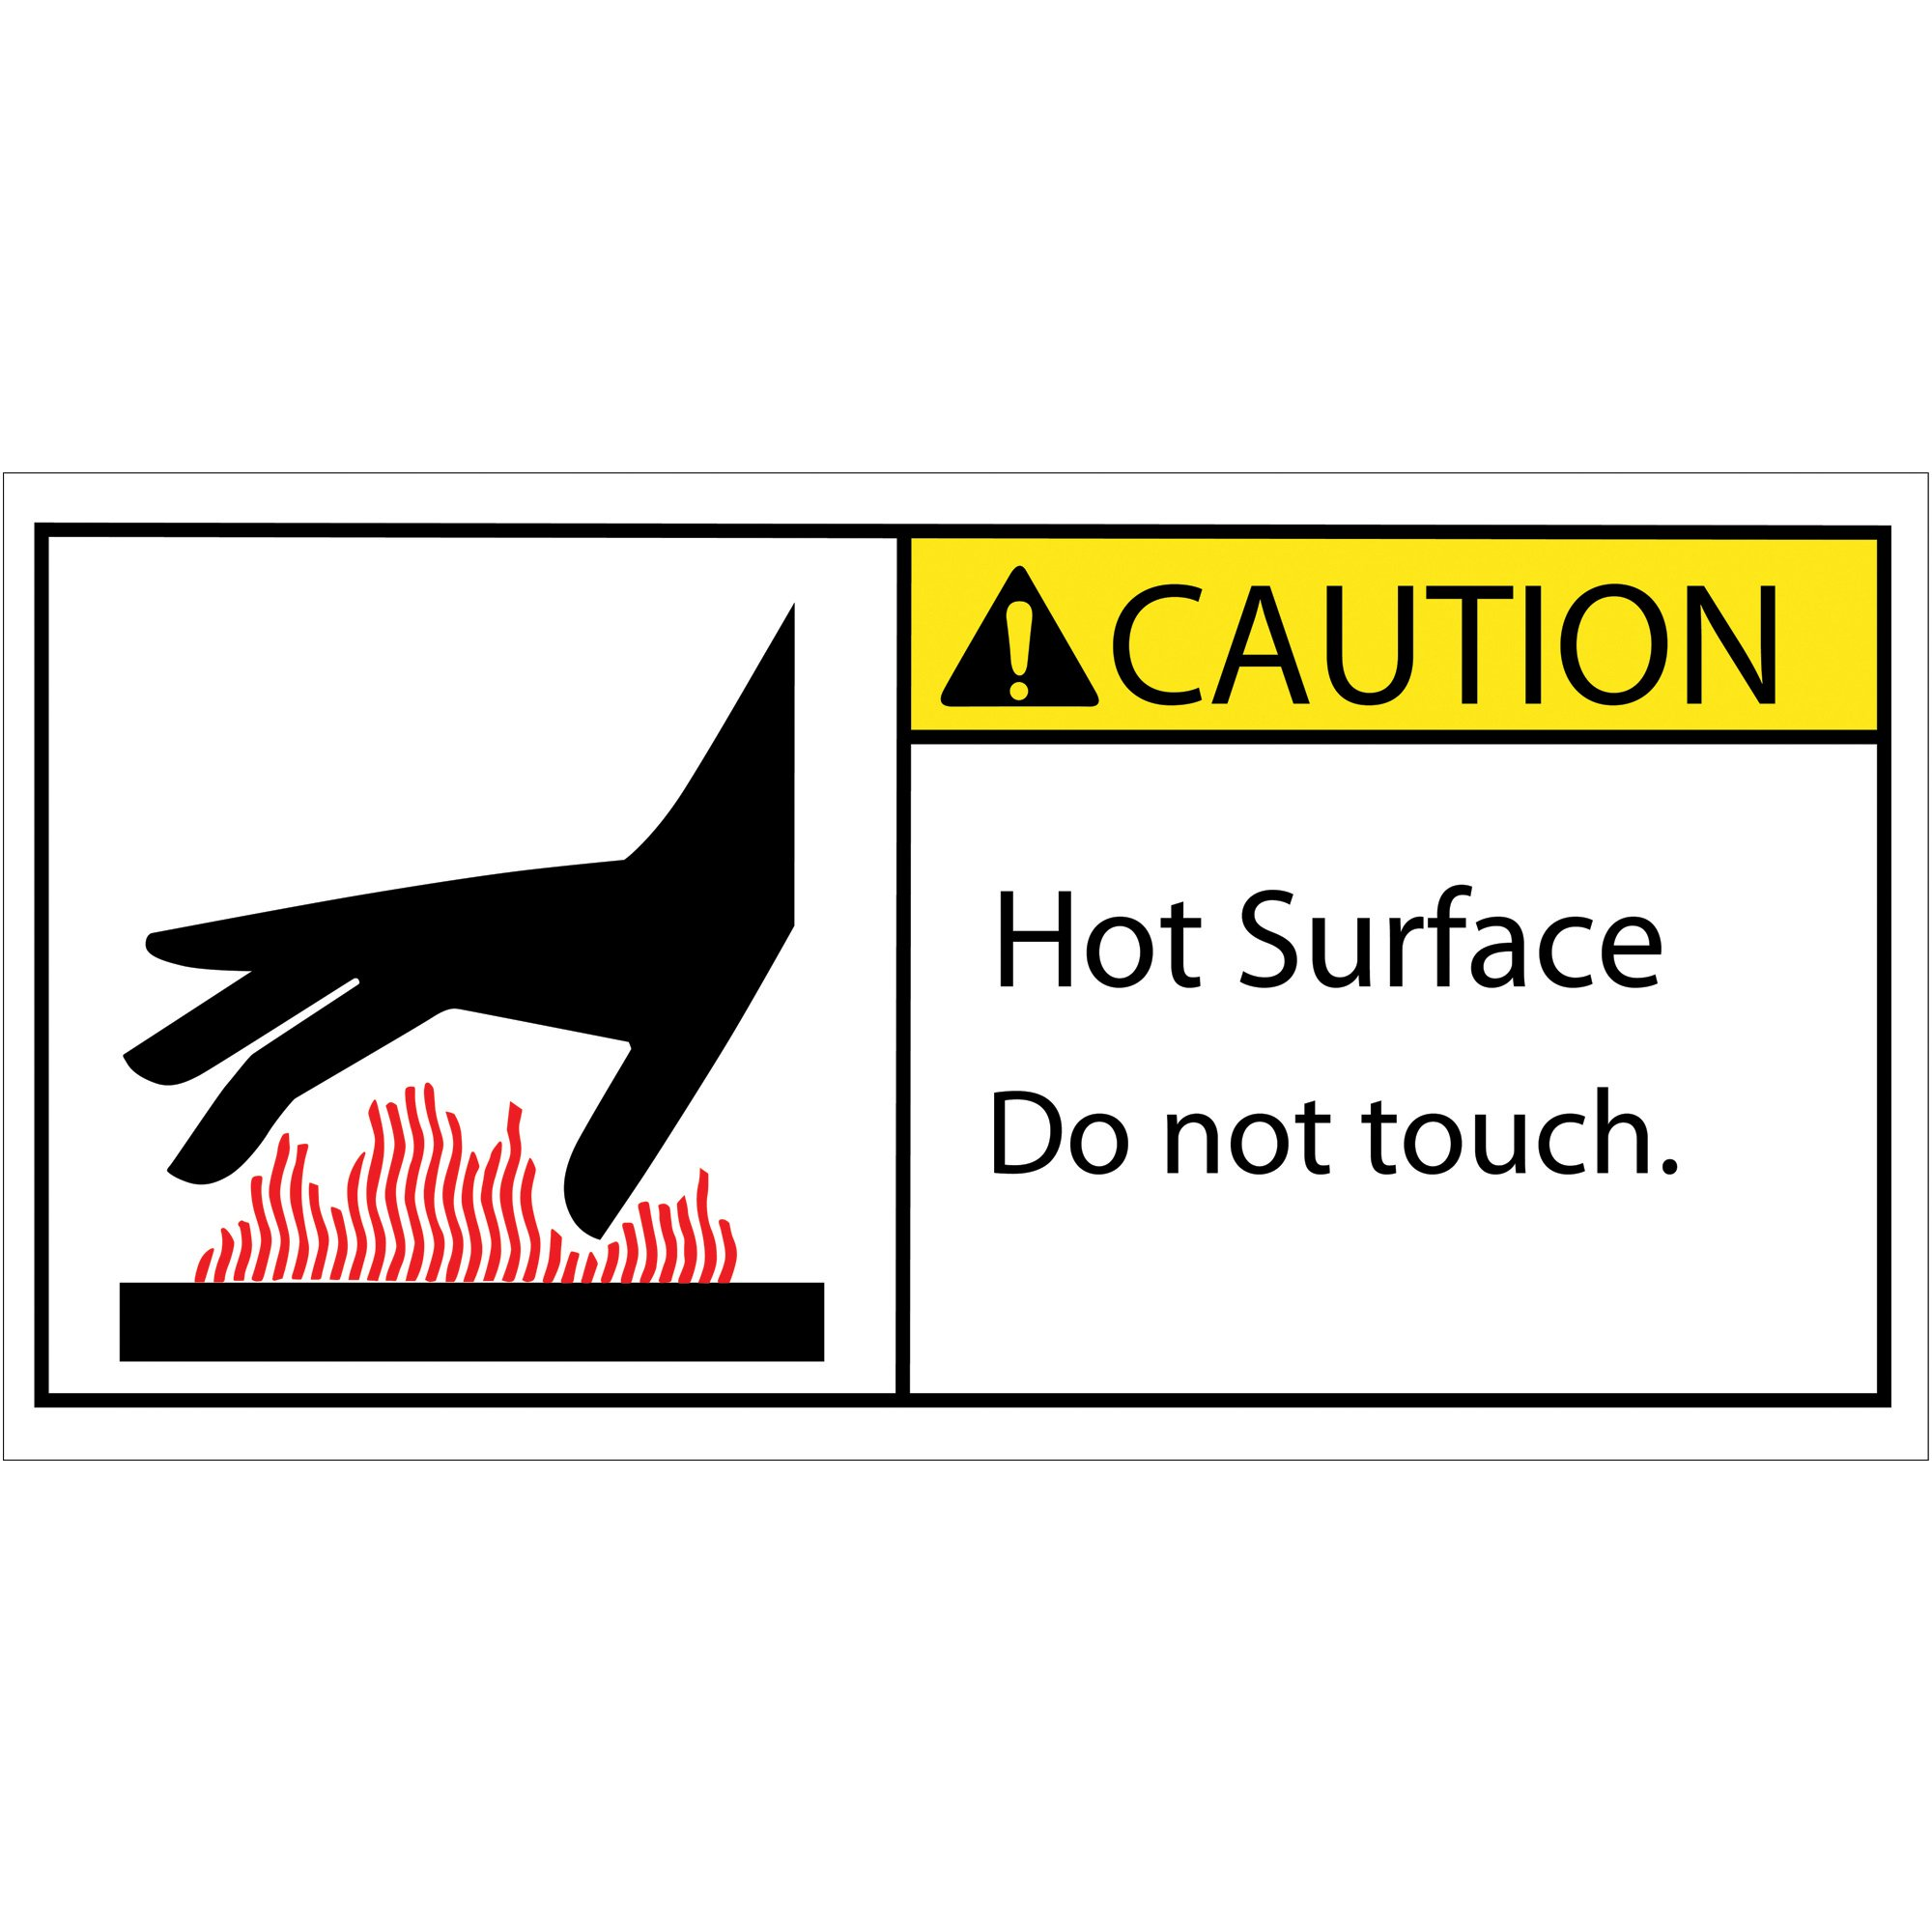 BOX USA BDSL521 Tape Logic Caution Hot Surface Durable Safety Label, 2'' x 4'', Multi-Color (1 Roll of 25)